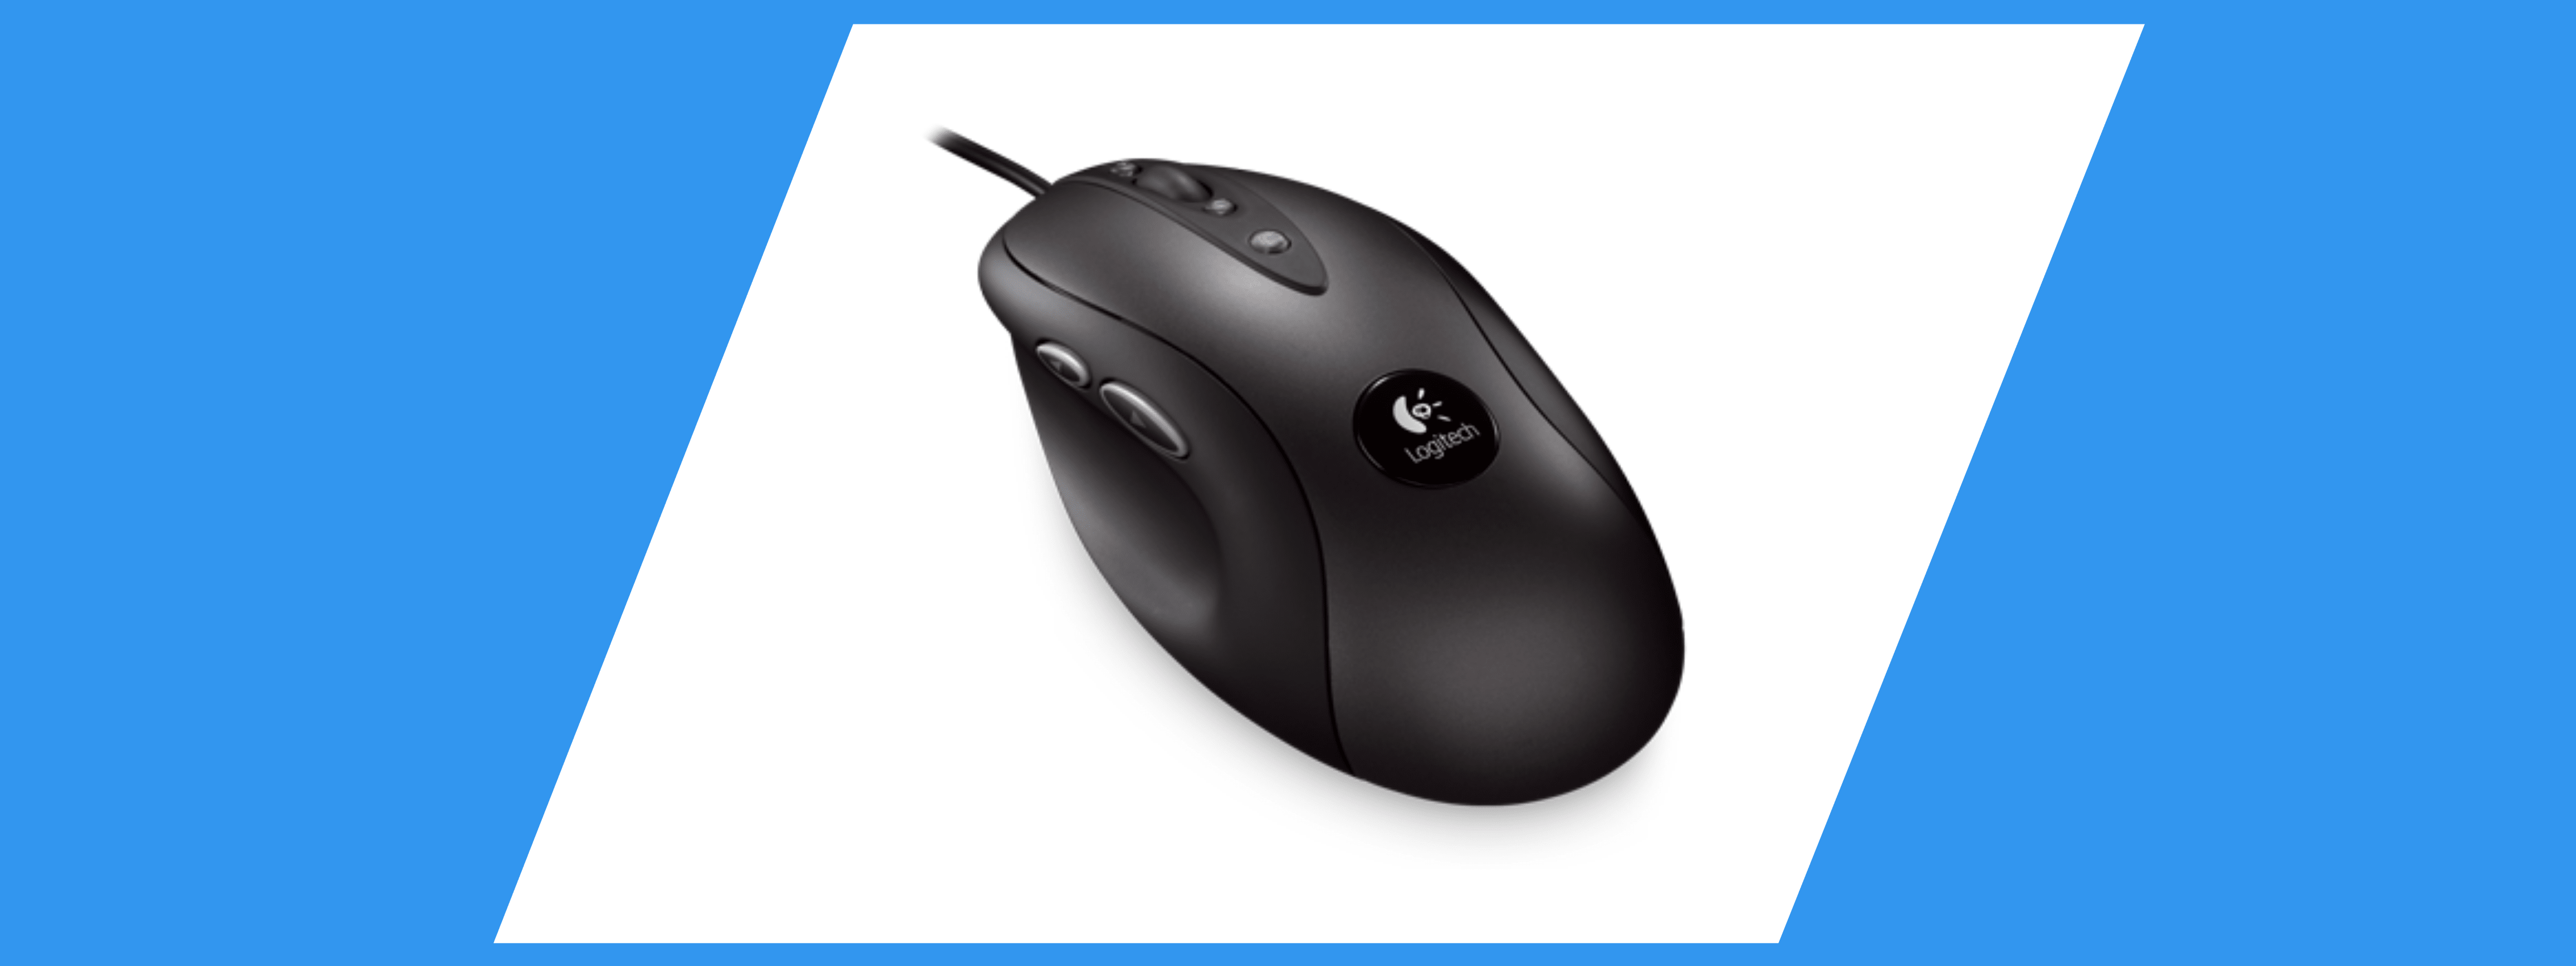 Logitech Optical Gaming Mouse G400 Software